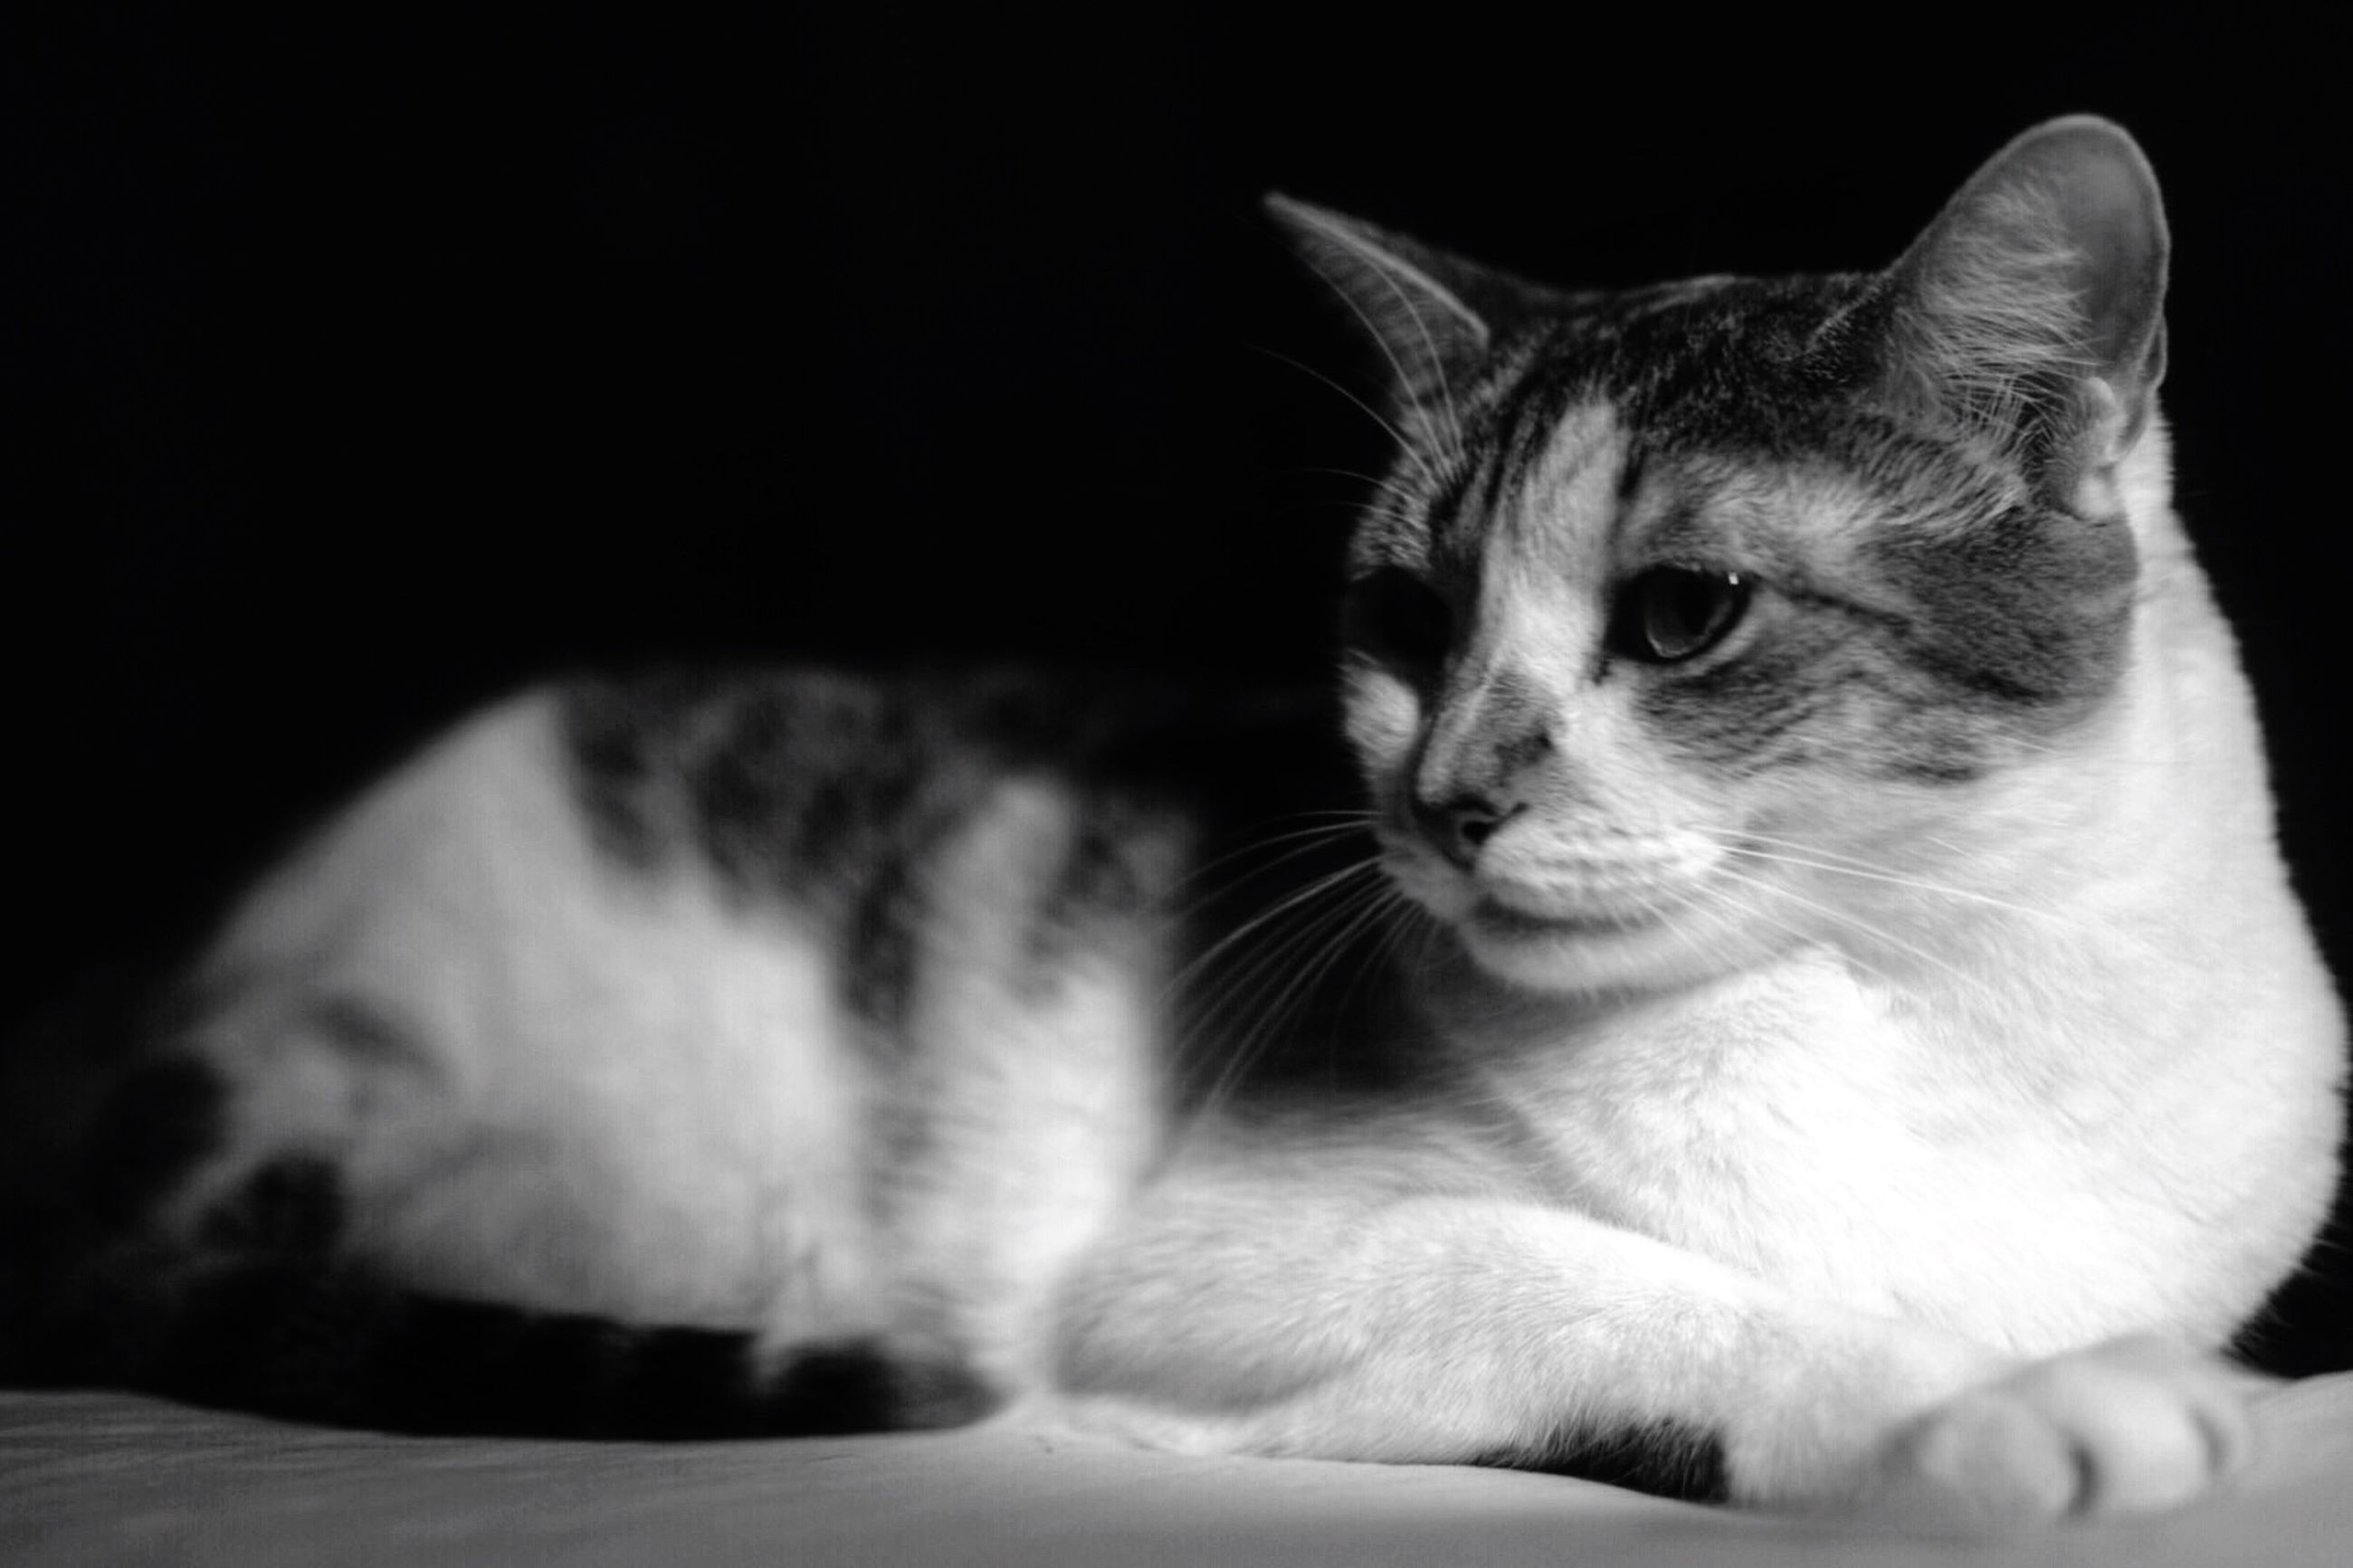 pets, domestic cat, one animal, domestic animals, animal themes, cat, mammal, indoors, feline, whisker, relaxation, close-up, animal head, lying down, portrait, resting, home interior, looking at camera, bed